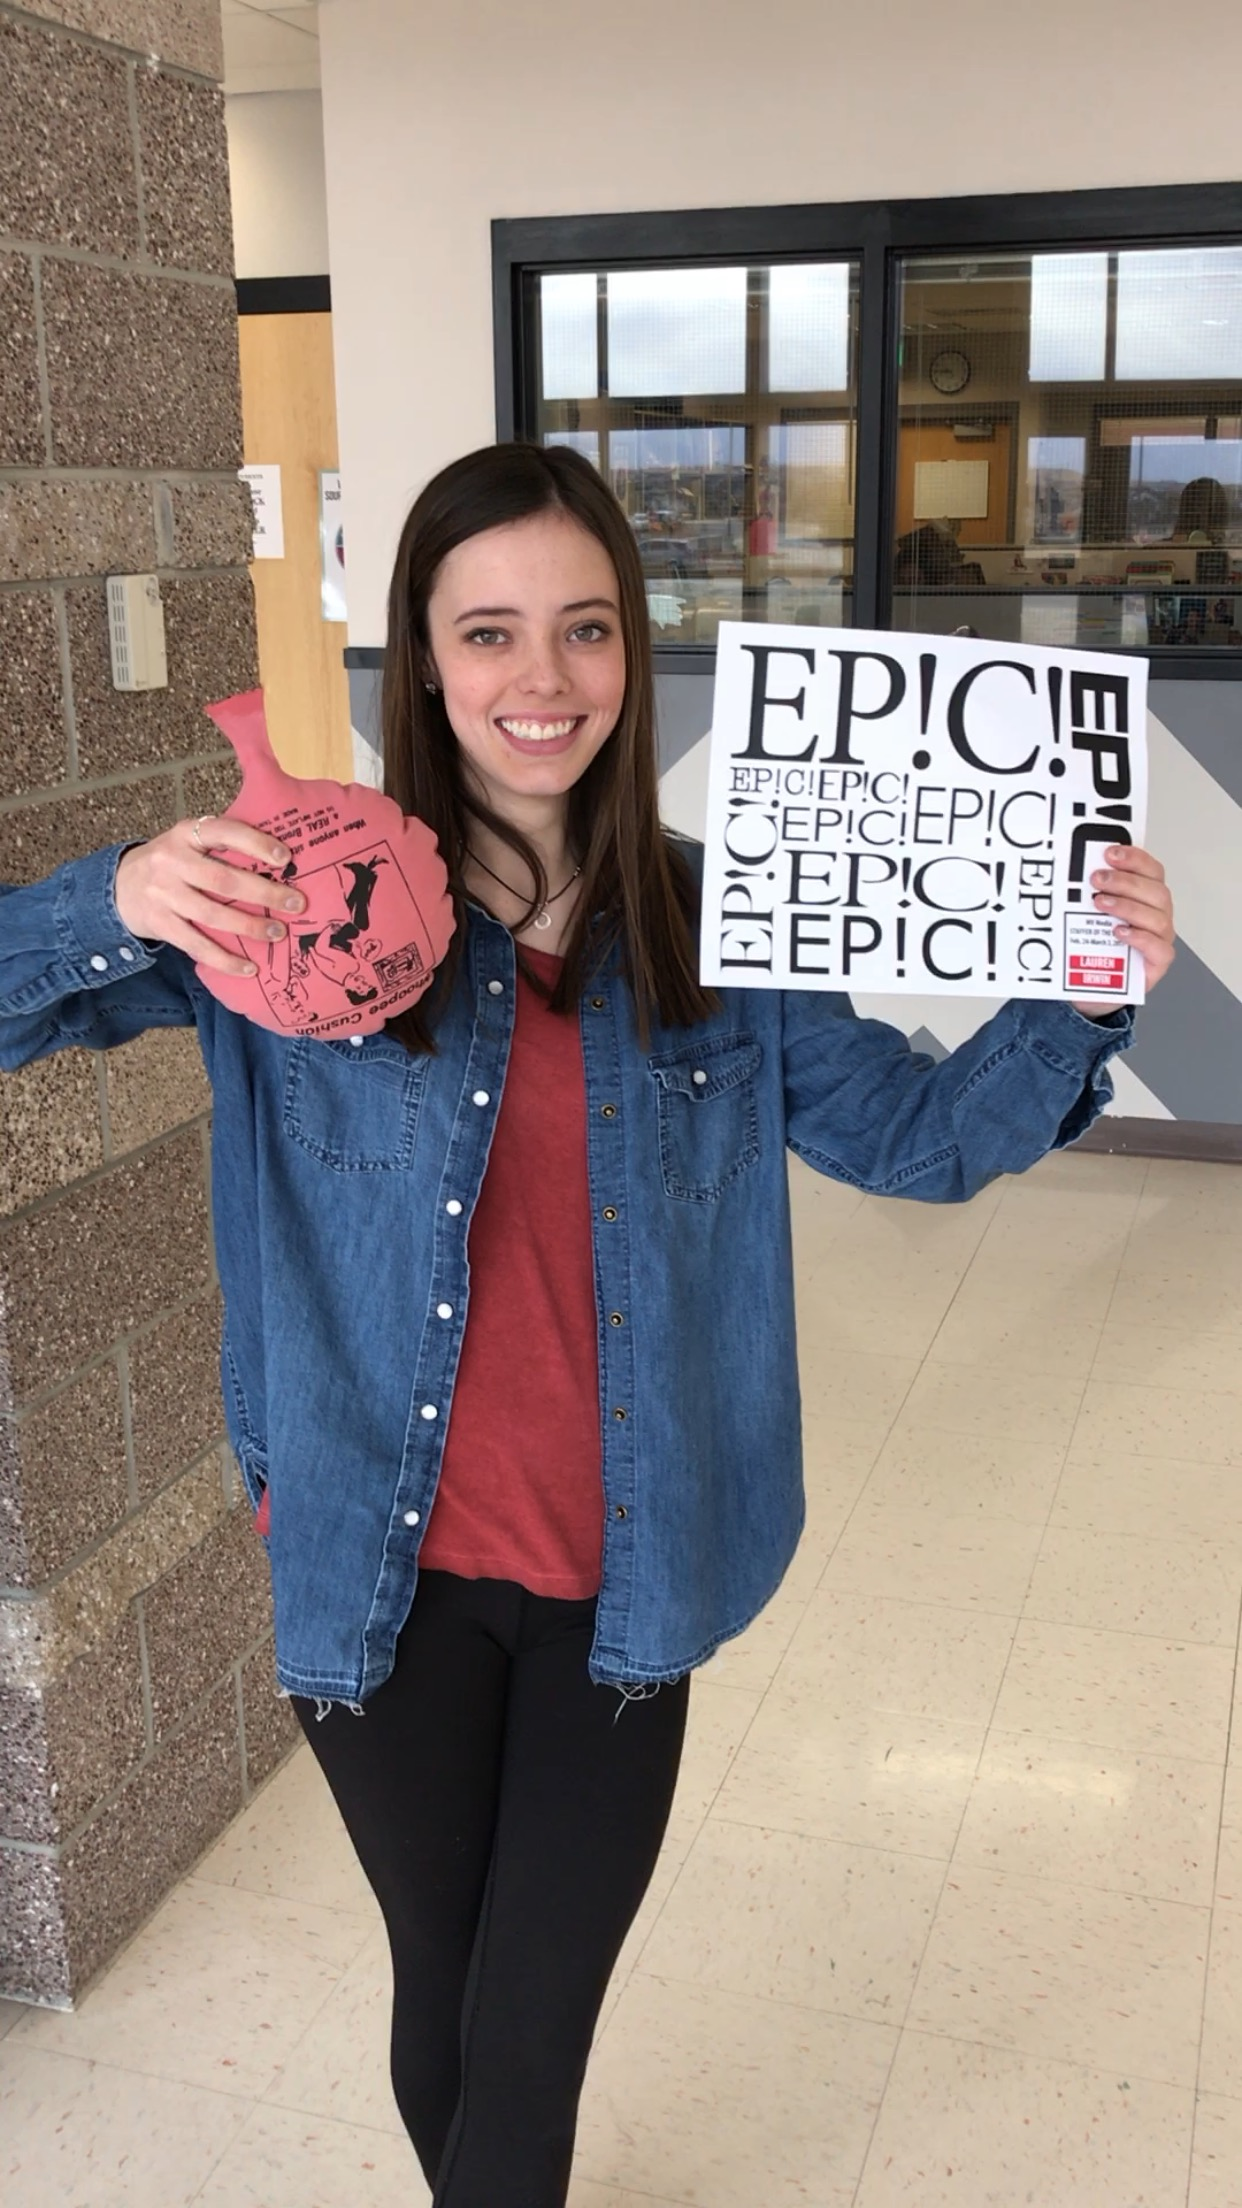 """This is a picture of me when I was awarded the title of """"Staffer of the Week."""" This was a big accomplishment for me due to the mass amount of content I did to be awarded it. It may seem insignificant to some, but being recognized by editors and mentors was important. I even have the poster hanging on my bulletin board in my bedroom."""